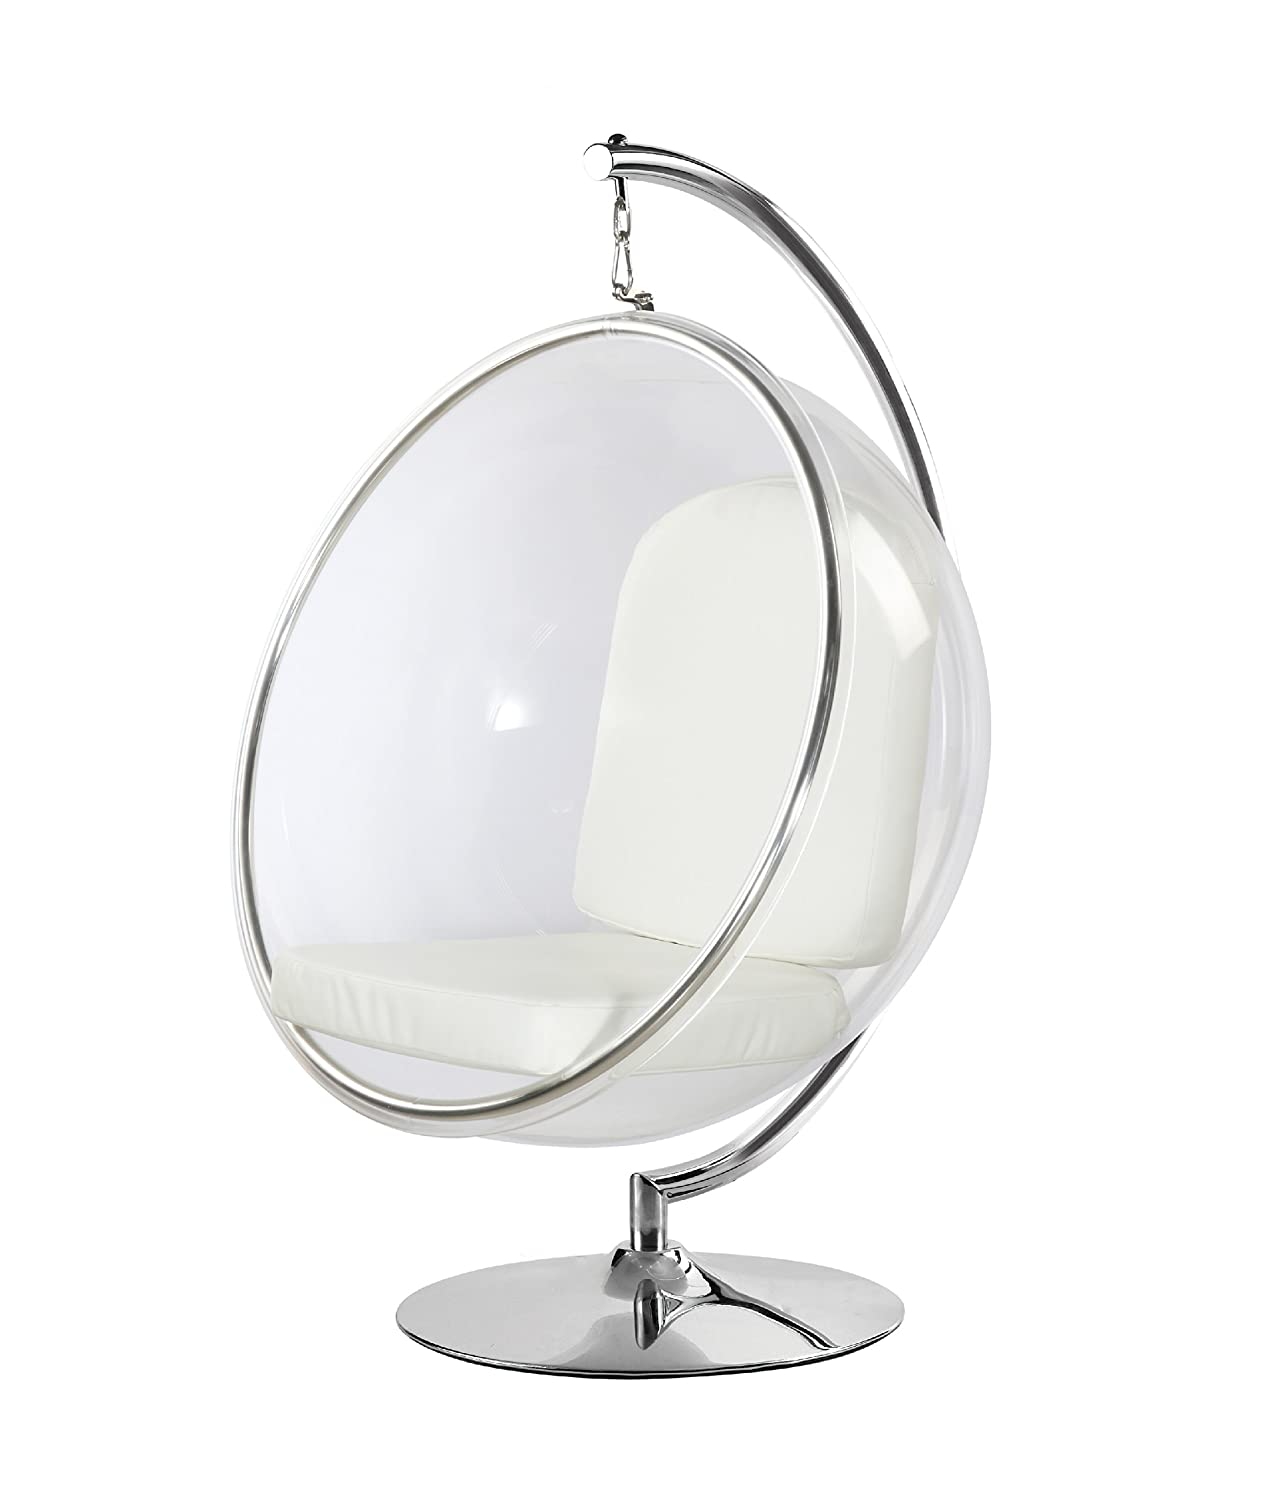 Amazoncom Designer Modern Bubble Chair By Eero Aarnio 1968 With